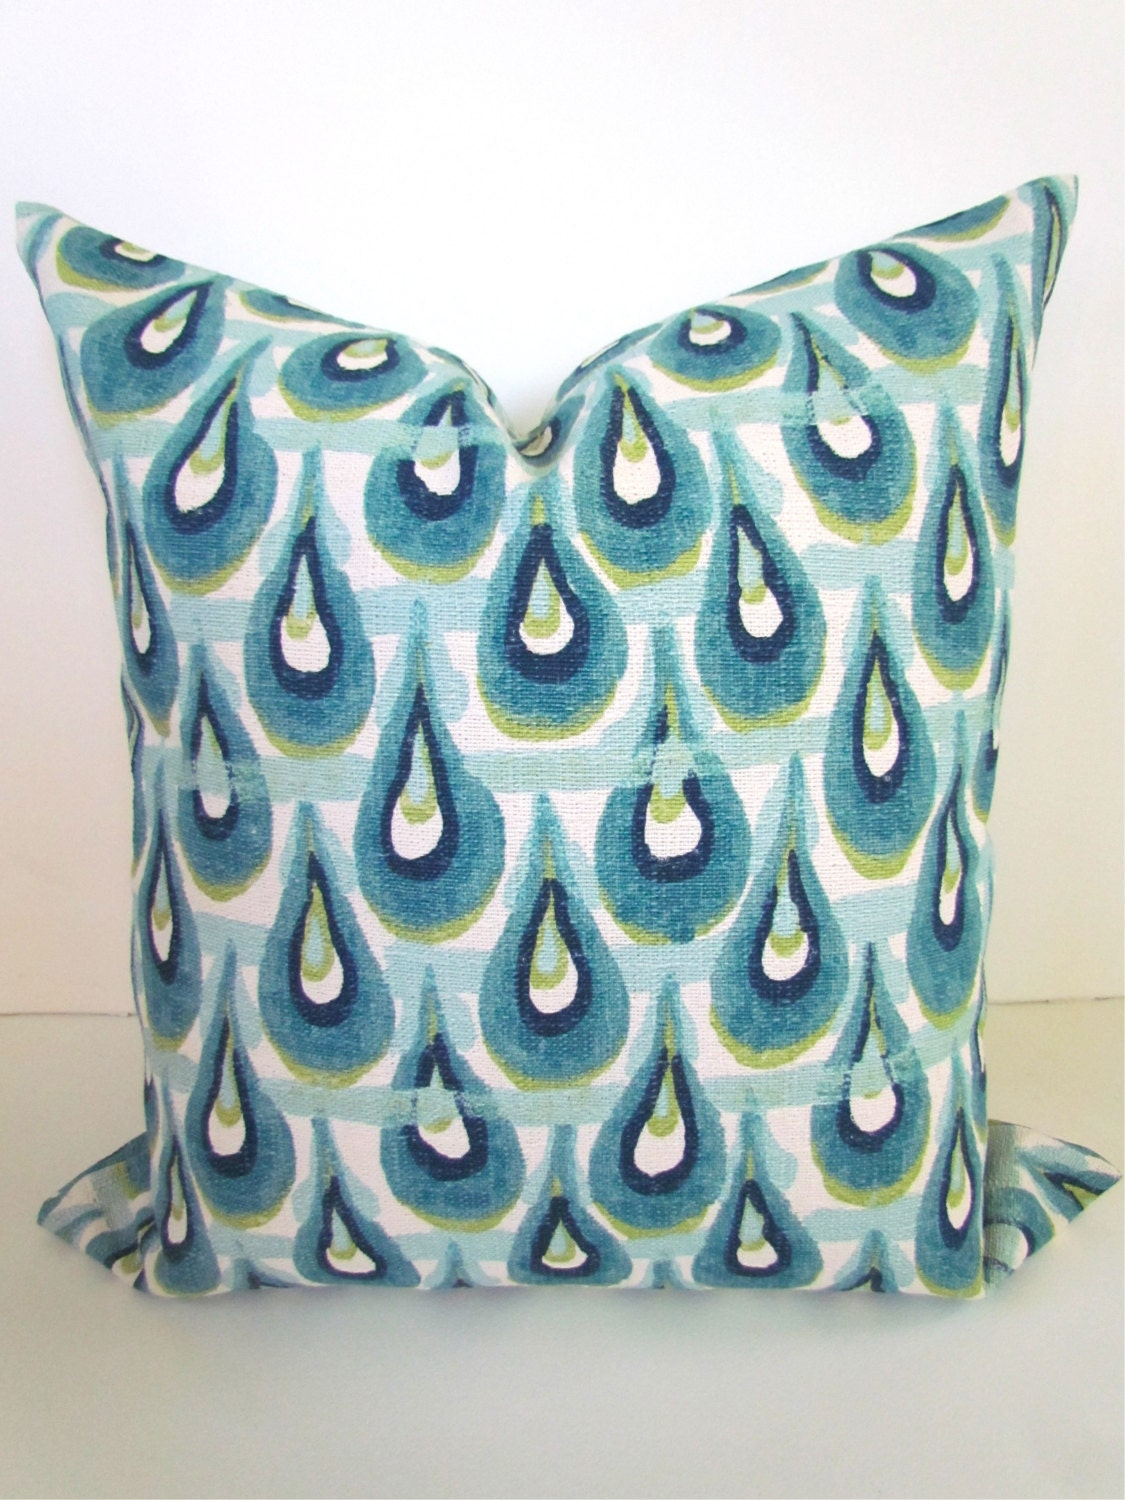 PILLOW Blue Decorative Pillow Covers Teal Green Navy Throw